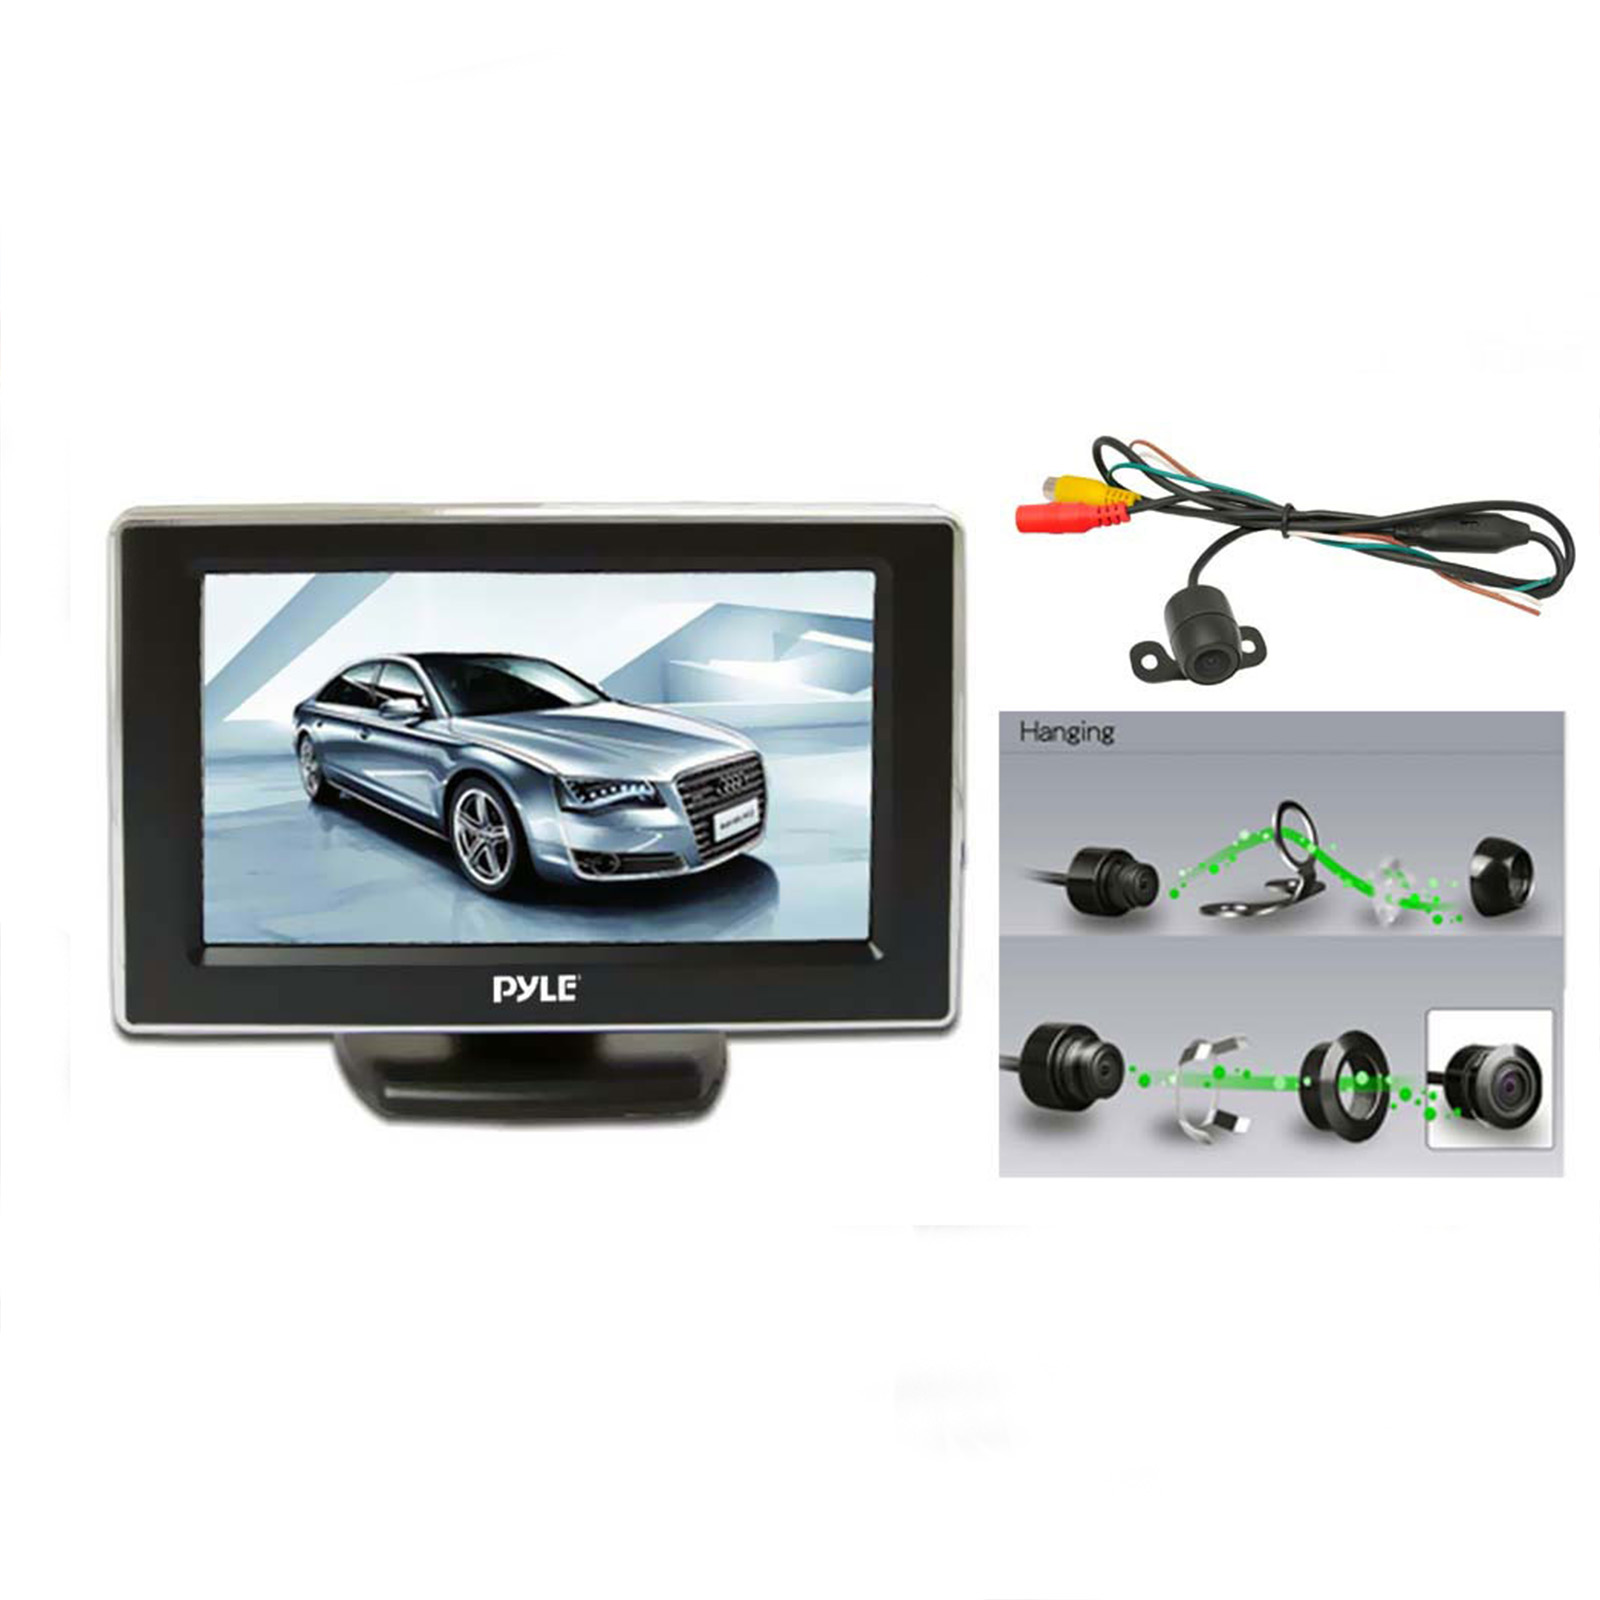 "Pyle 4.3"" TFT LCD Monitor w/ Universal Mount Rear View and Backup Color CMD Distance Scale Line Camera"